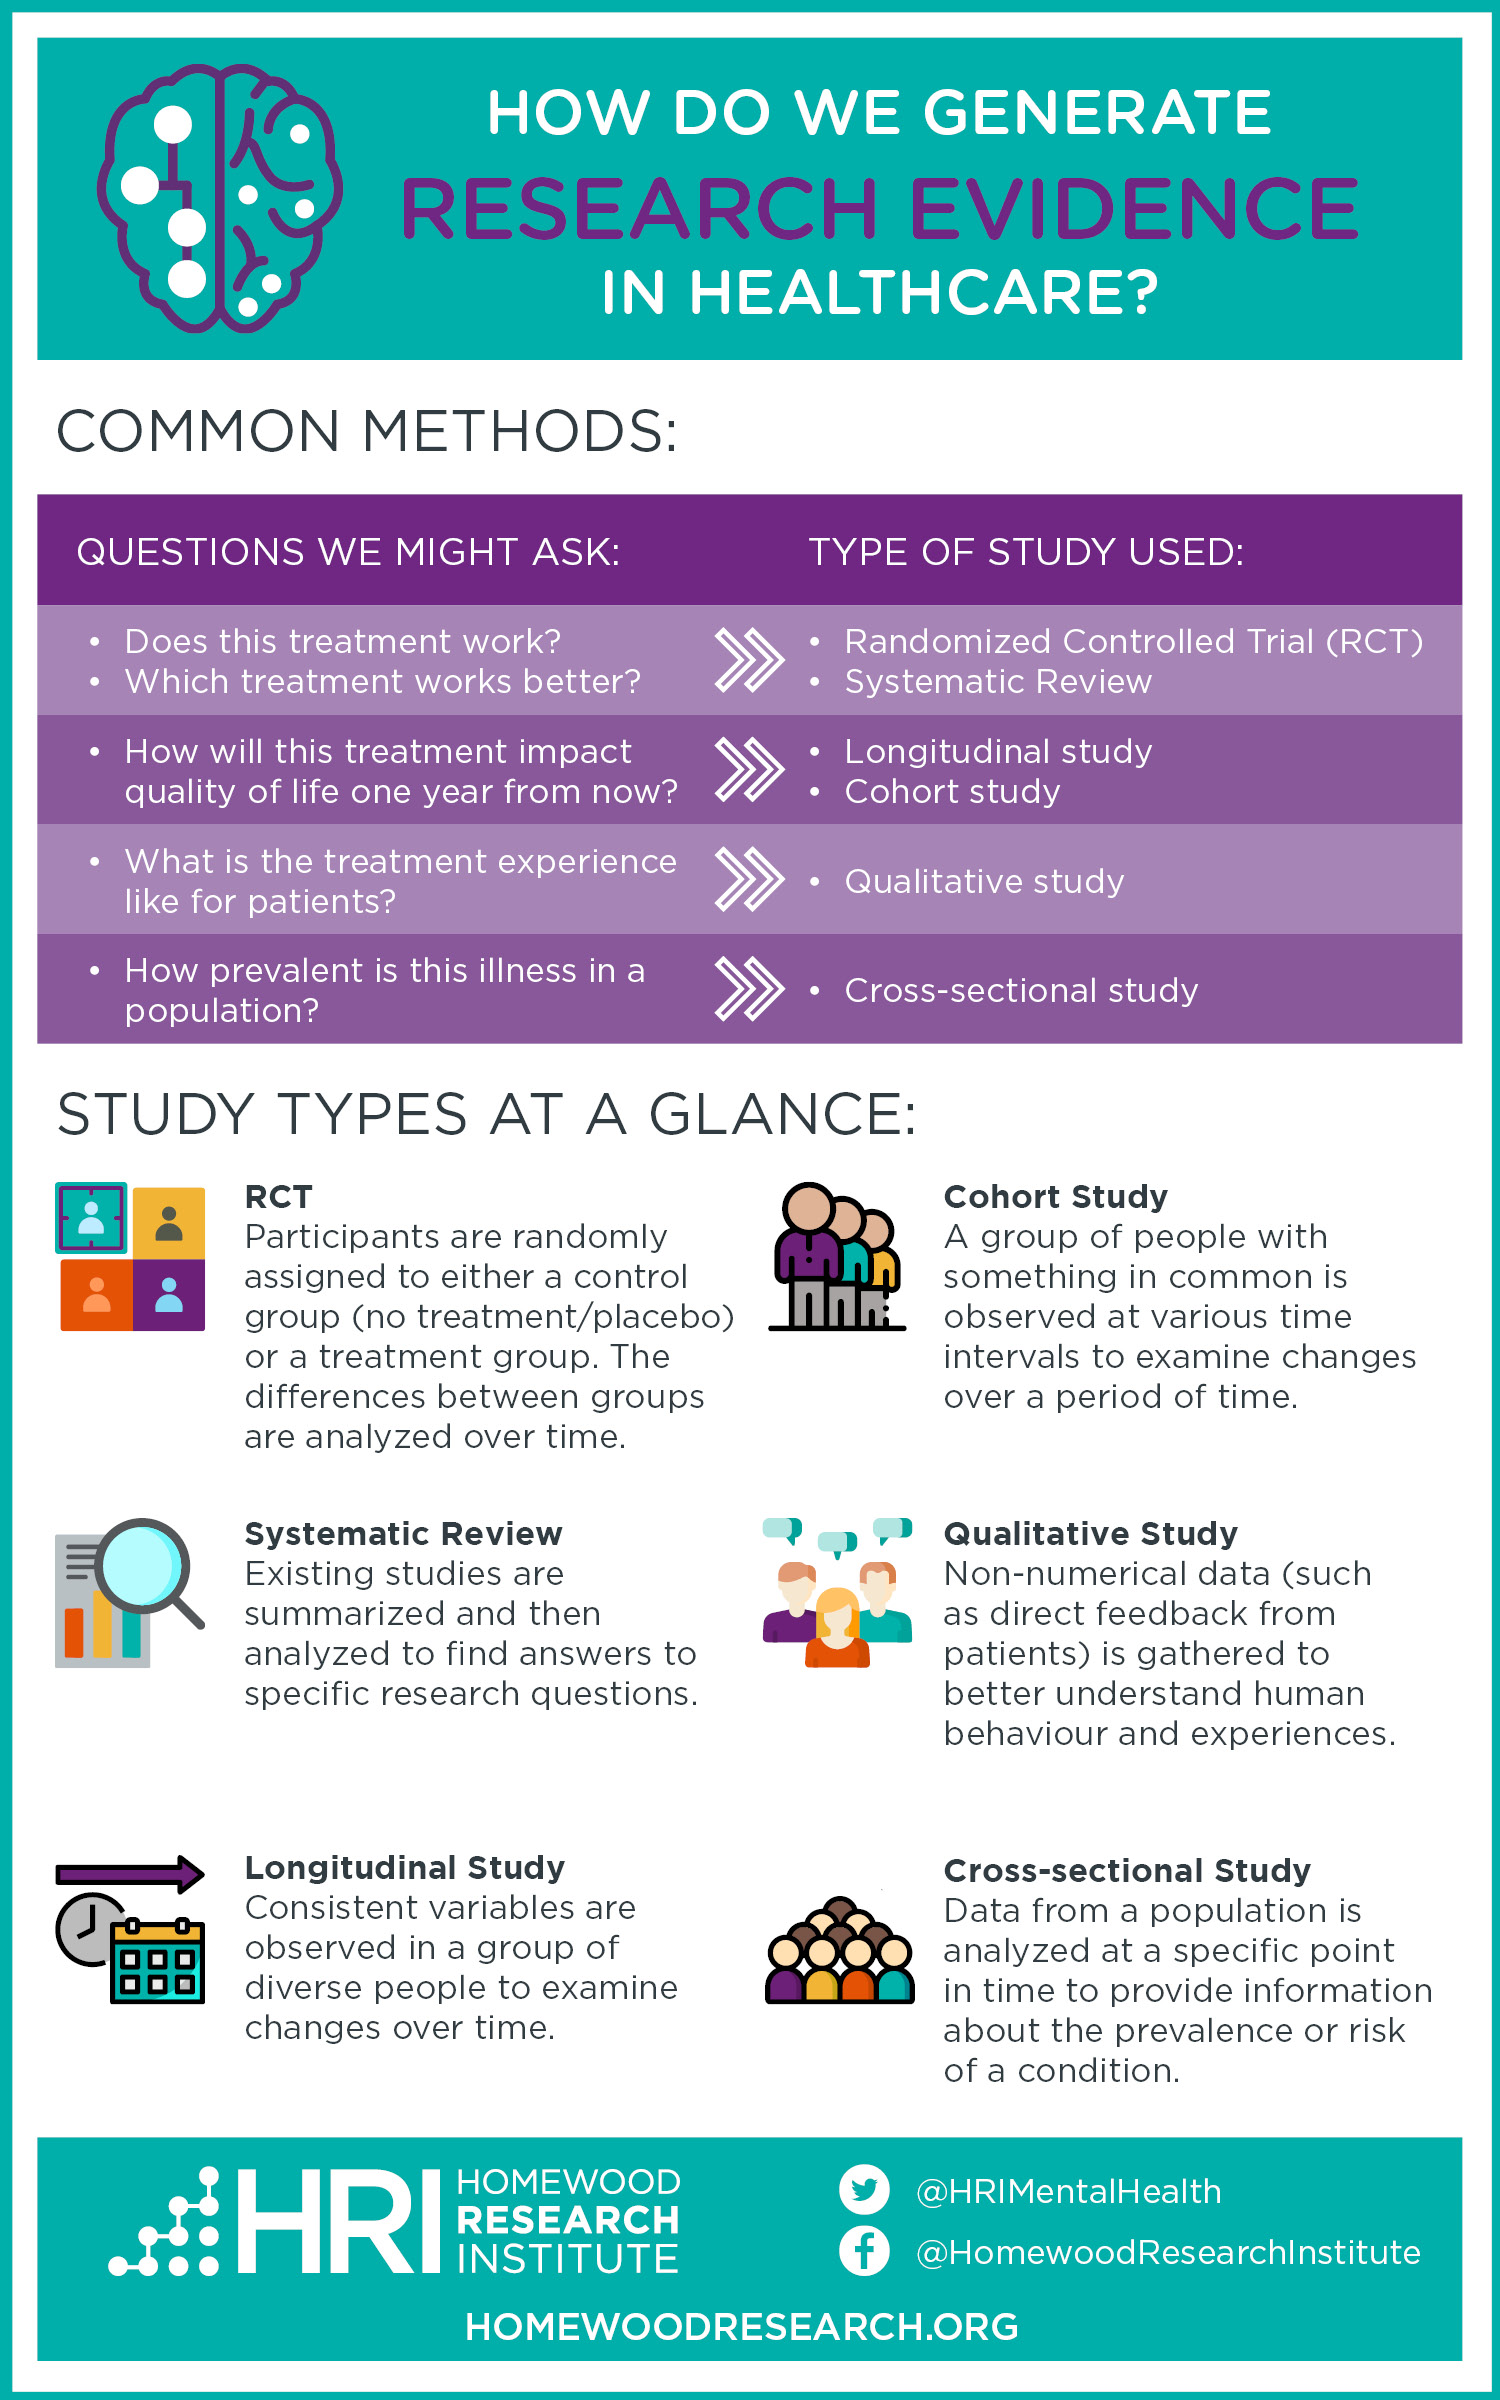 Infographic explaining several types of research studies